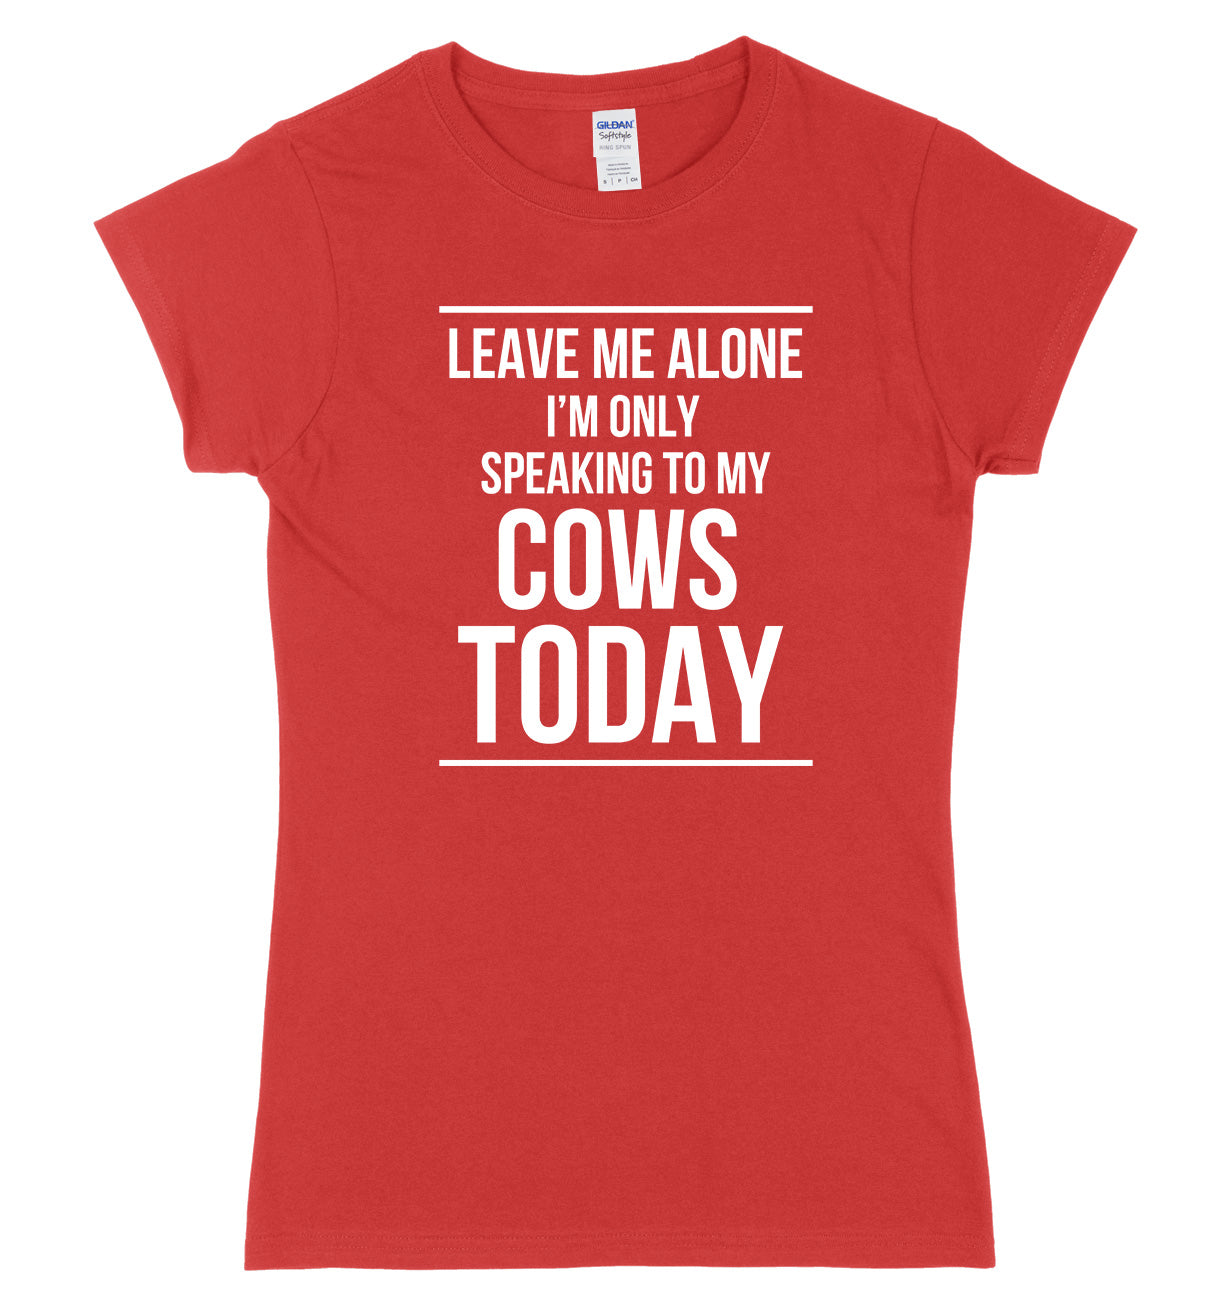 LEAVE ME ALONE I'M ONLY SPEAKING TO MY COWS TODAY FUNNY WOMENS LADIES SLIM FIT  T-SHIRT